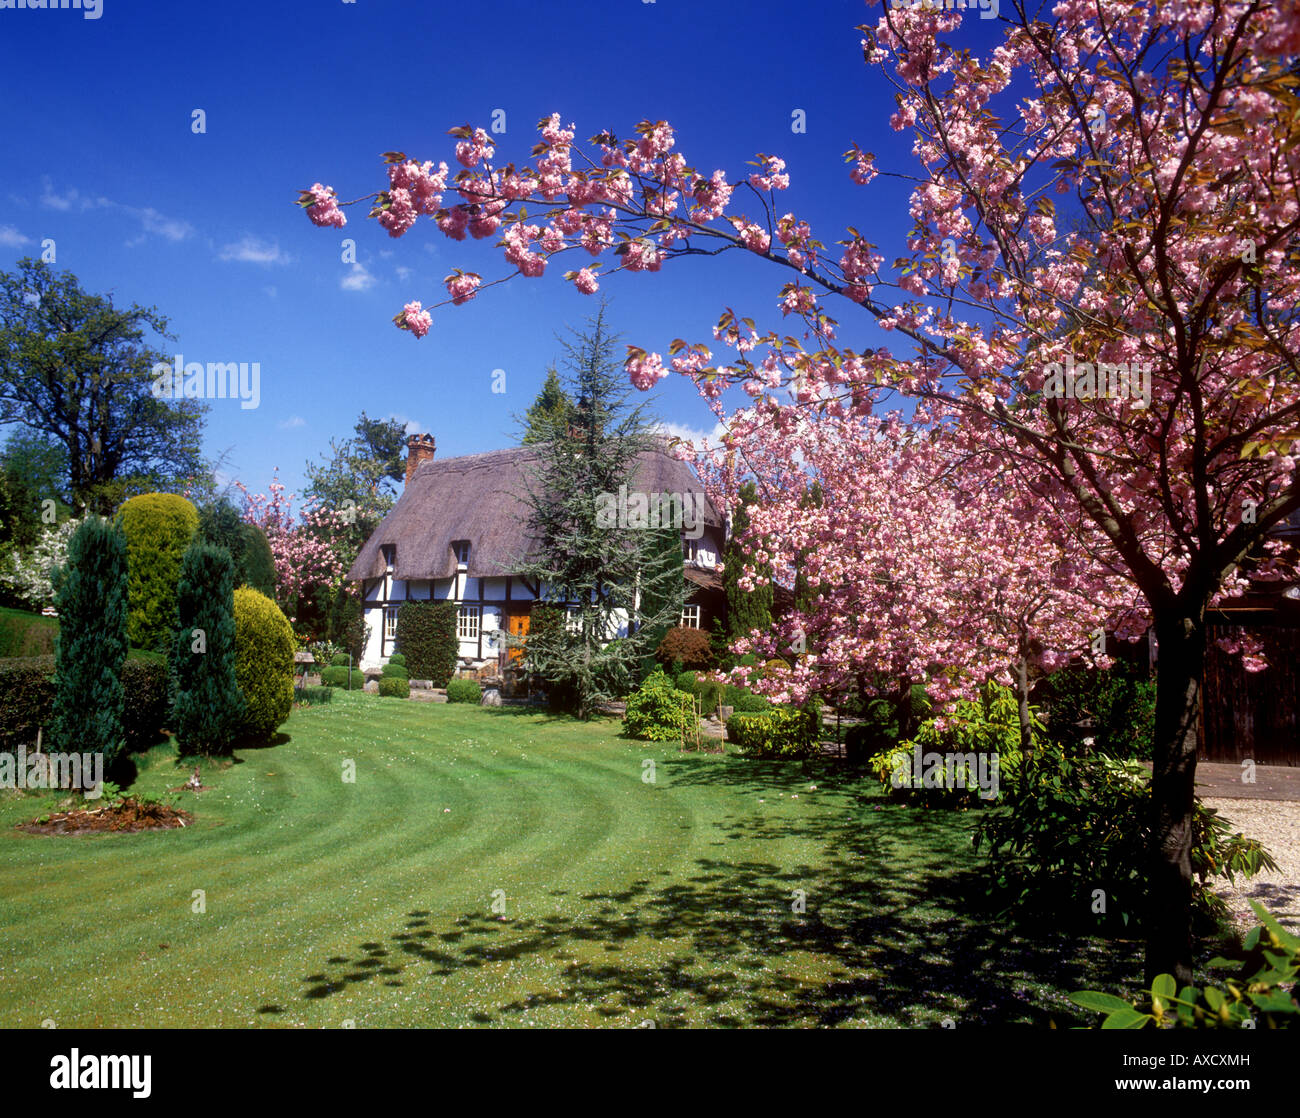 Emery Down - A New Forest cottage in Springtime - Stock Image